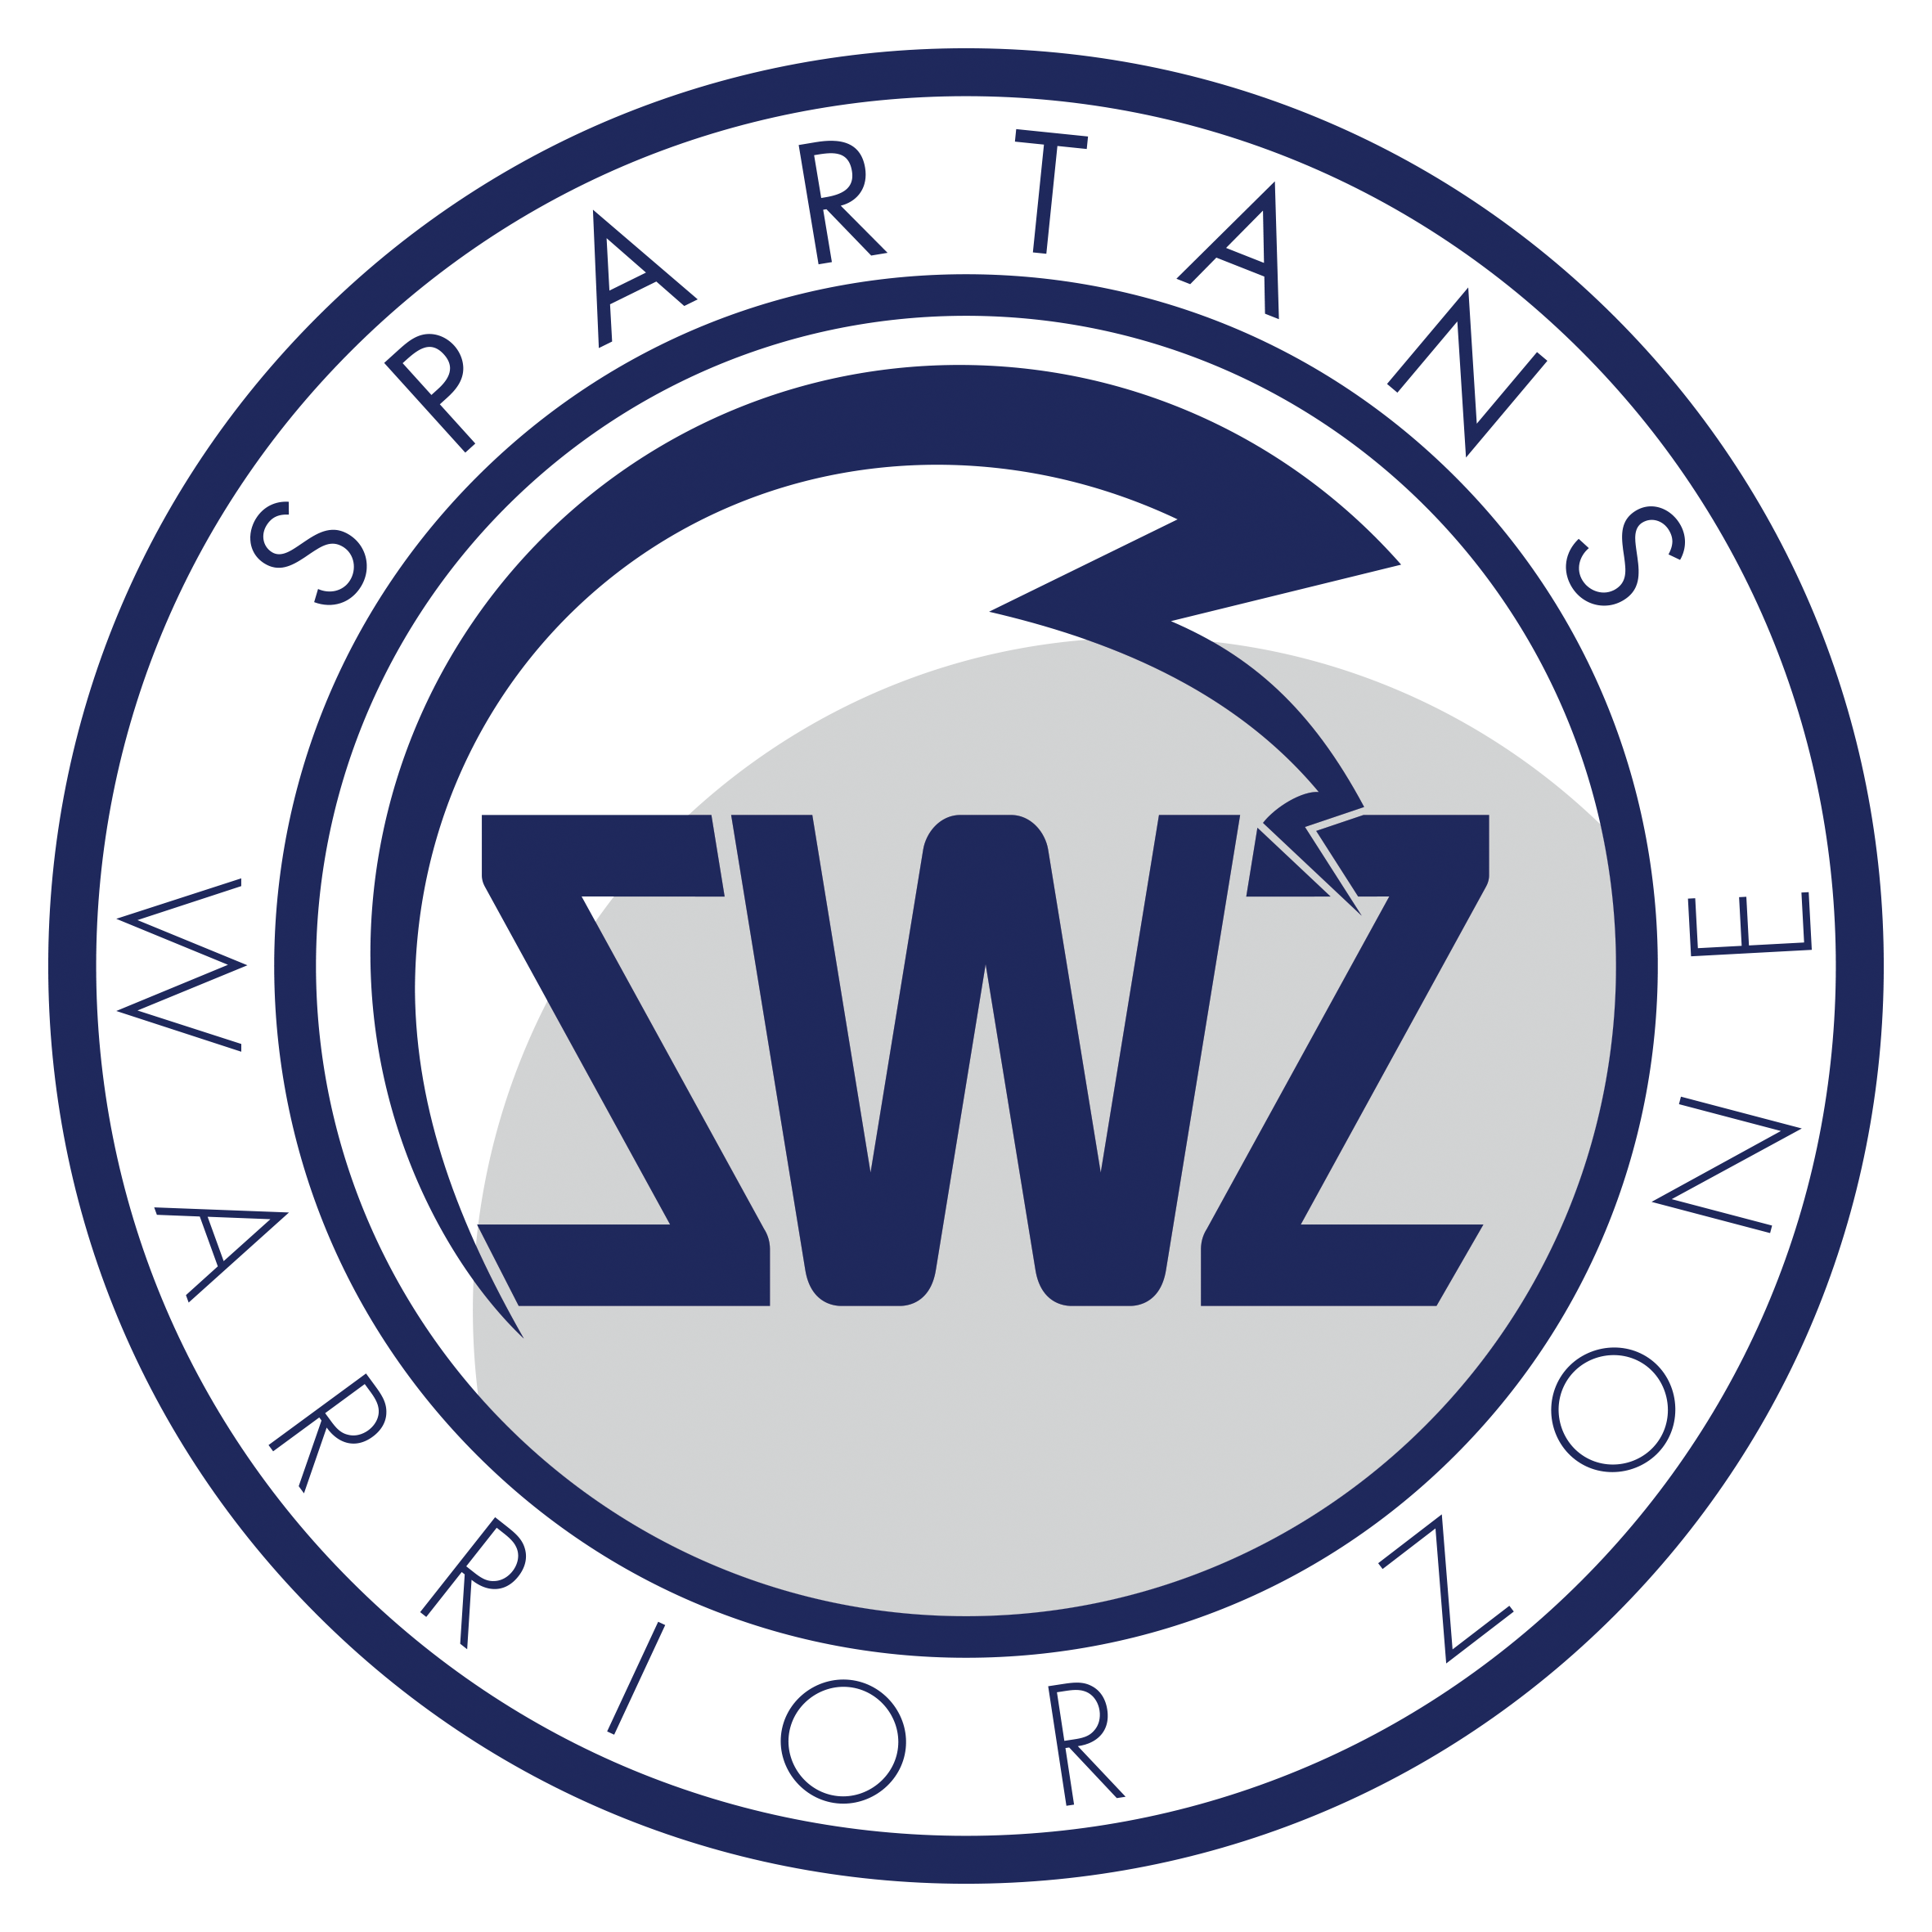 Spartans Warrior Zone